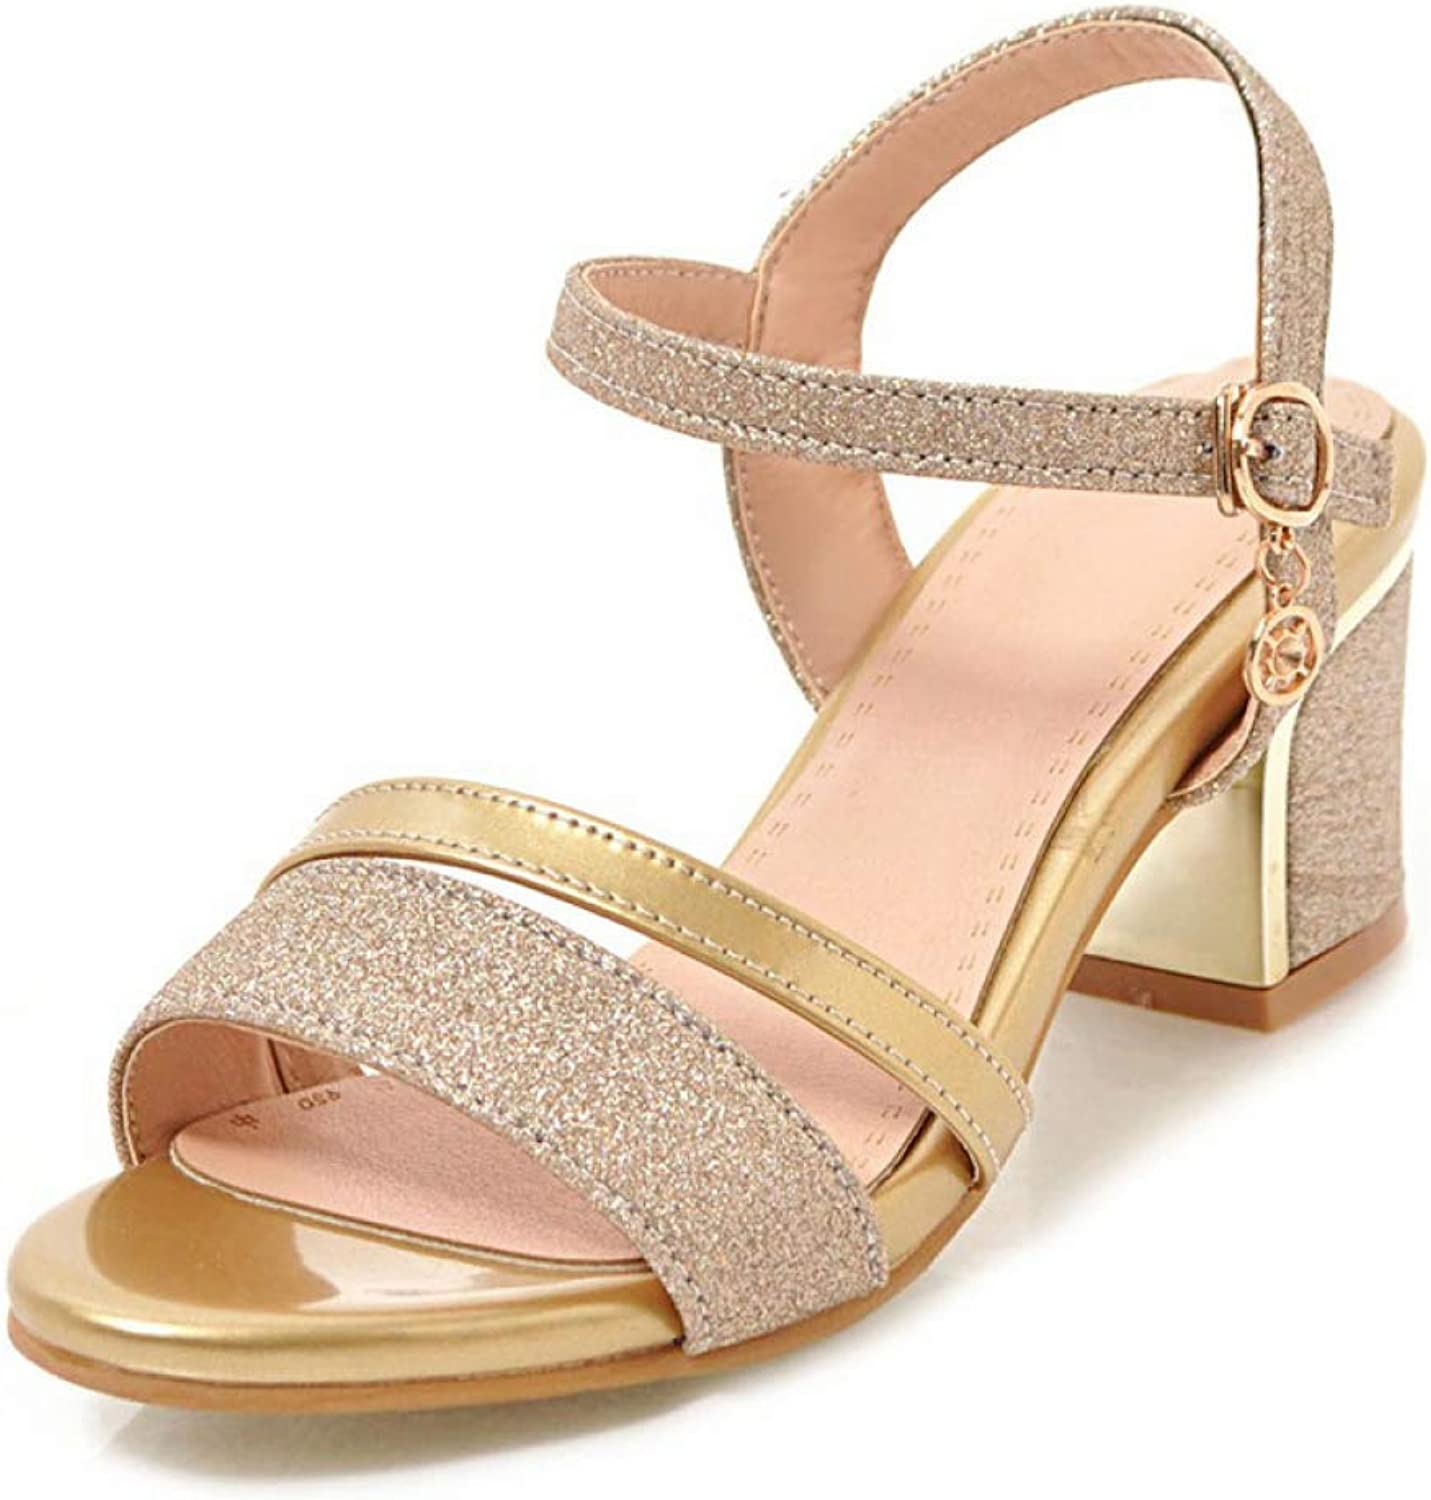 T-JULY Women Sandals Gladiator Casual Platform Party Wedding Slingback Bling High Square Heel shoes with Ankle Strap for Summer